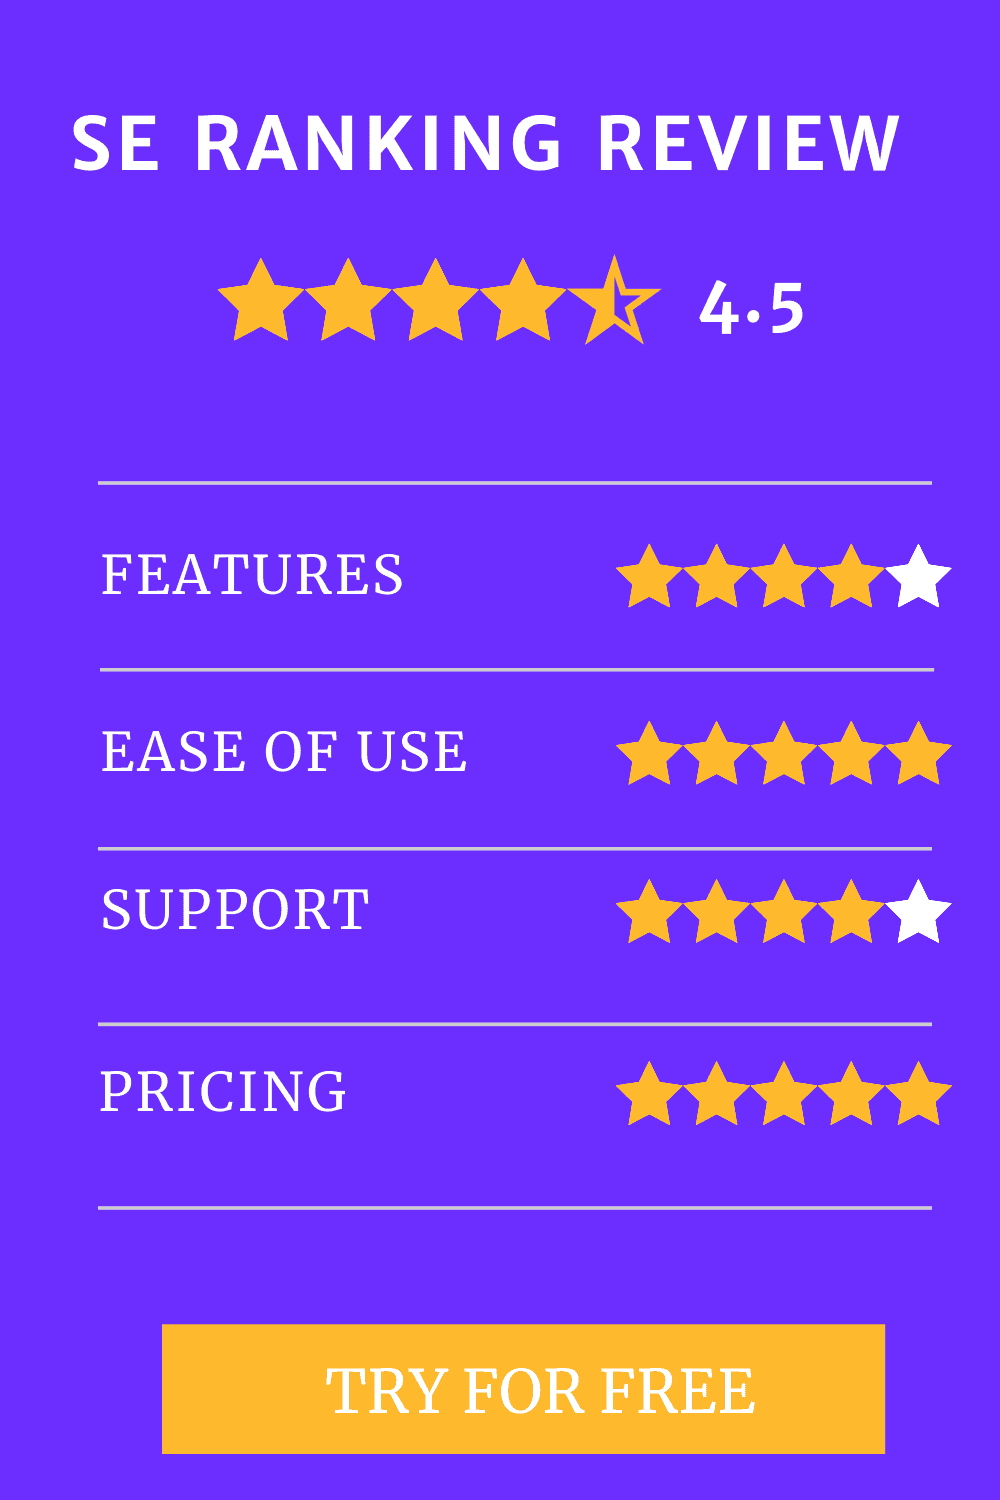 se ranking review (ratings)